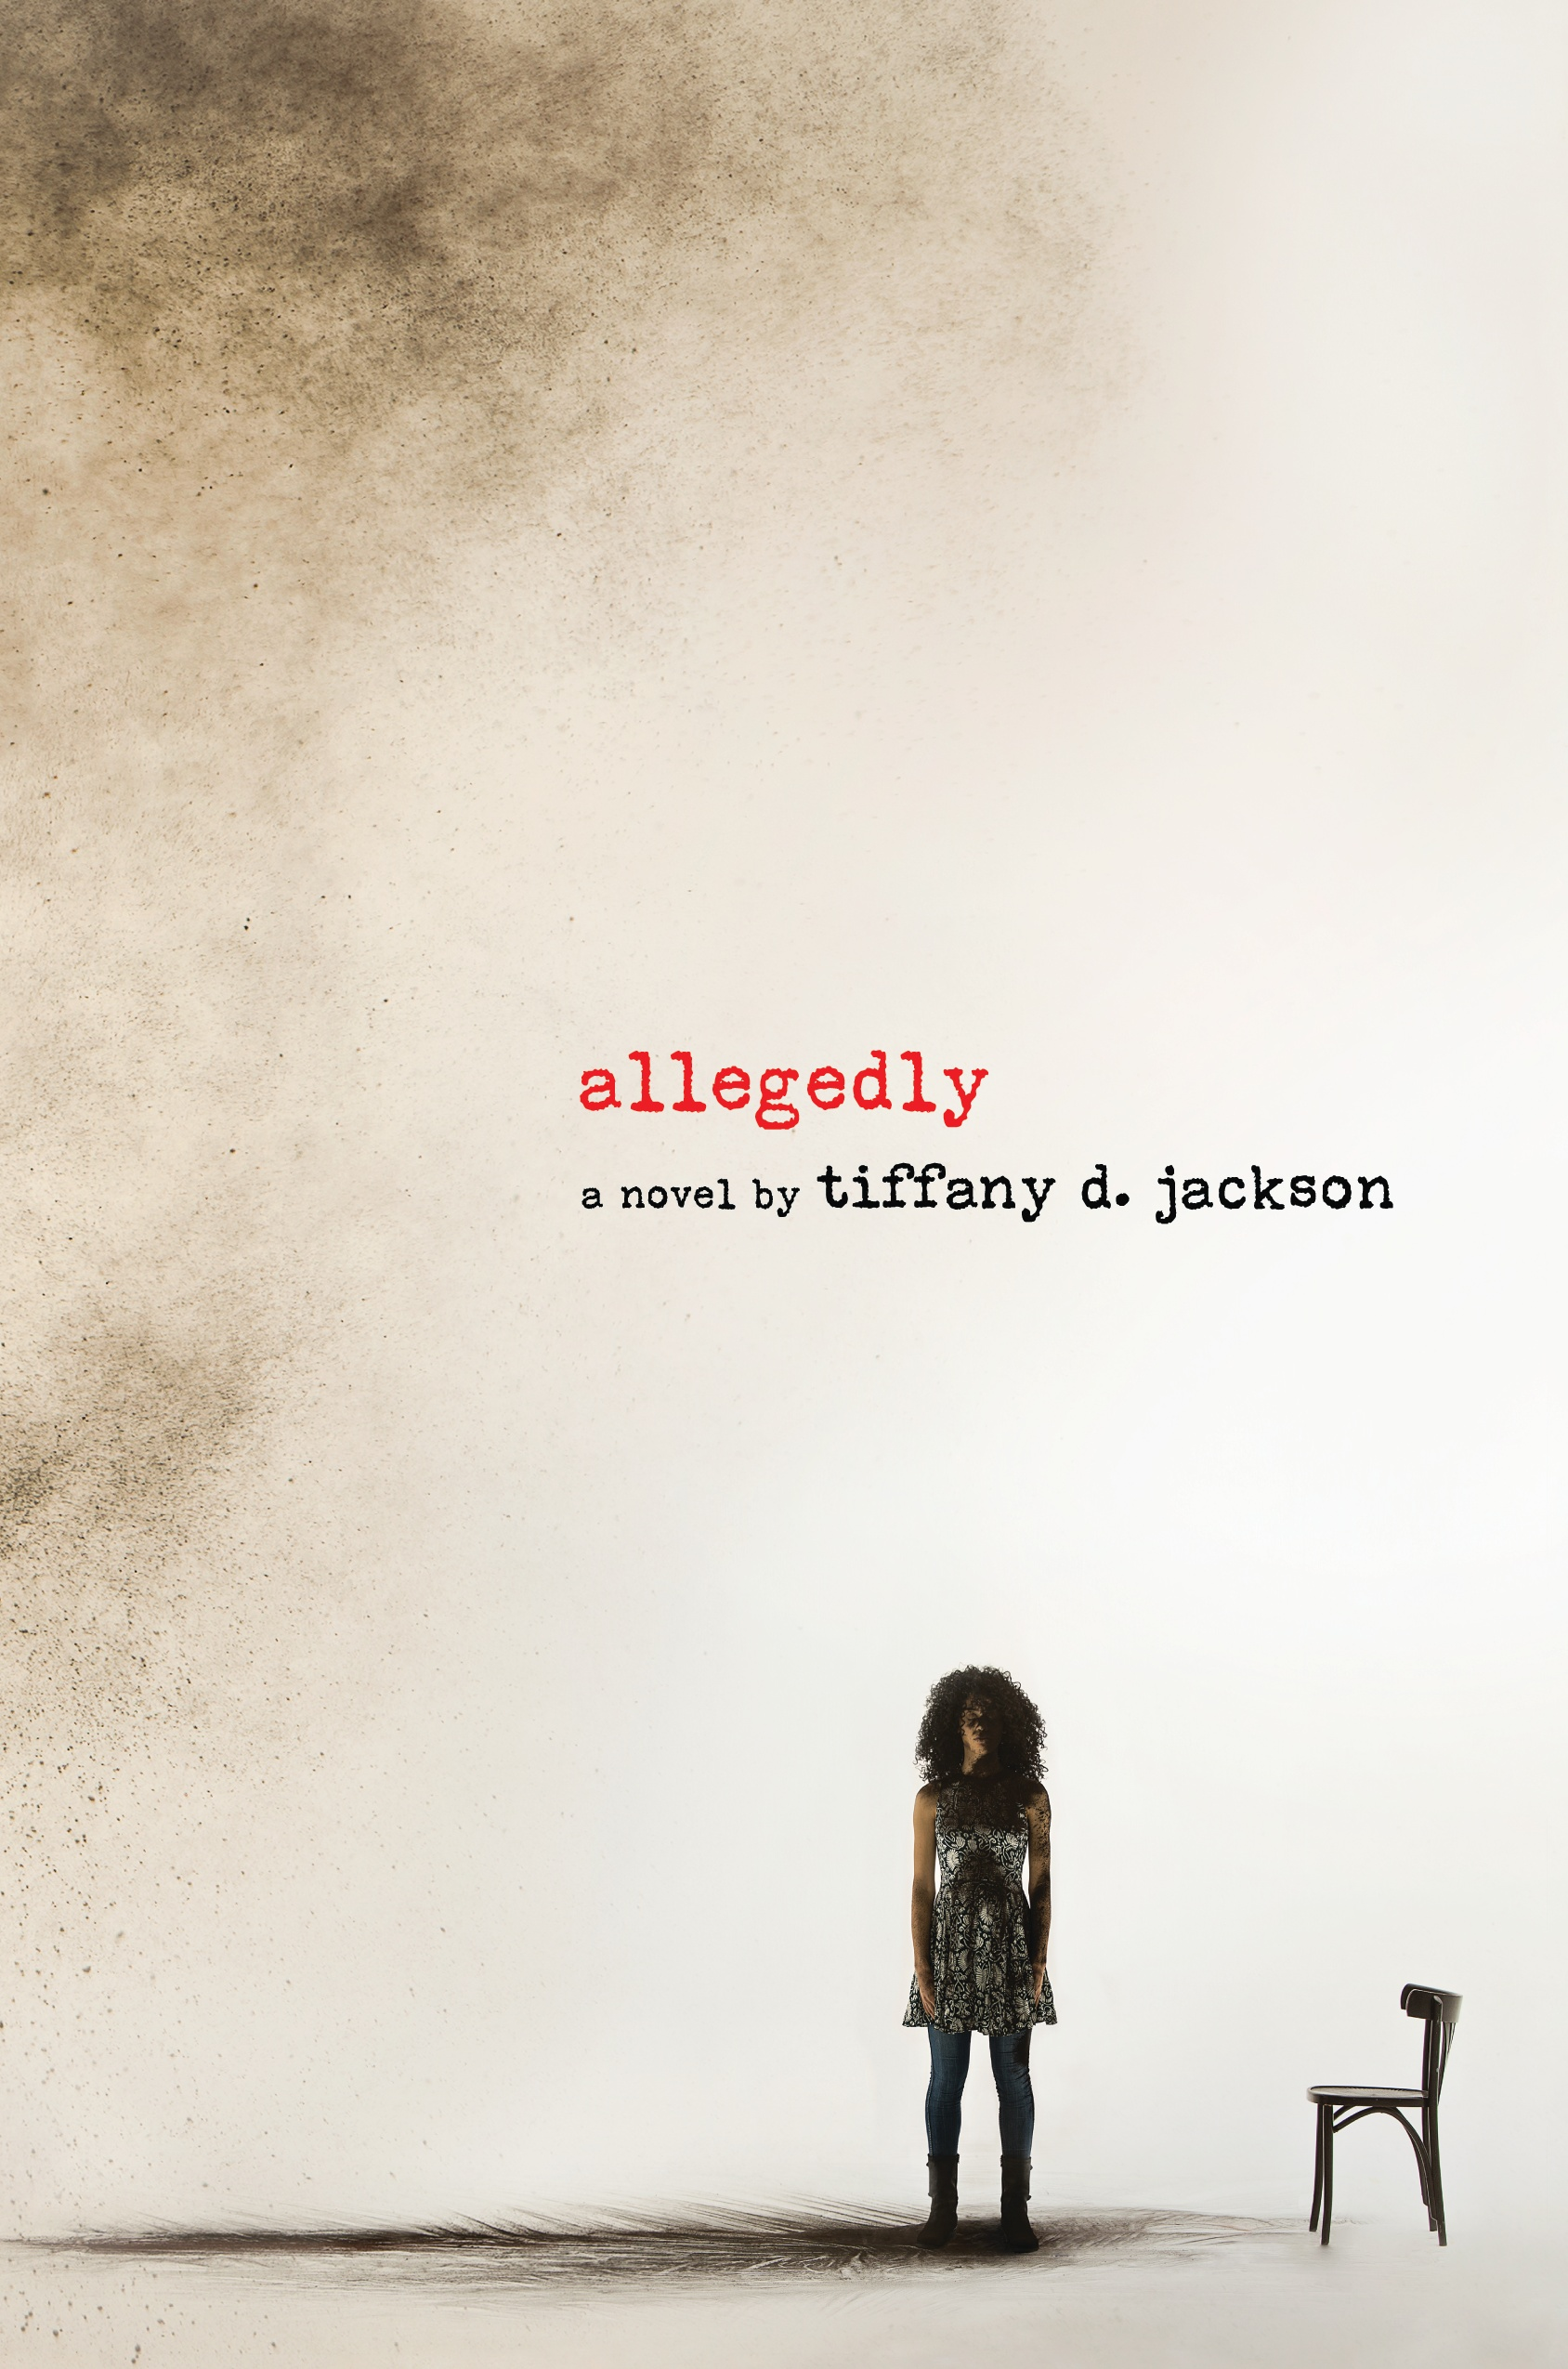 Book Launch: Allegedly by Tiffany D. Jackson